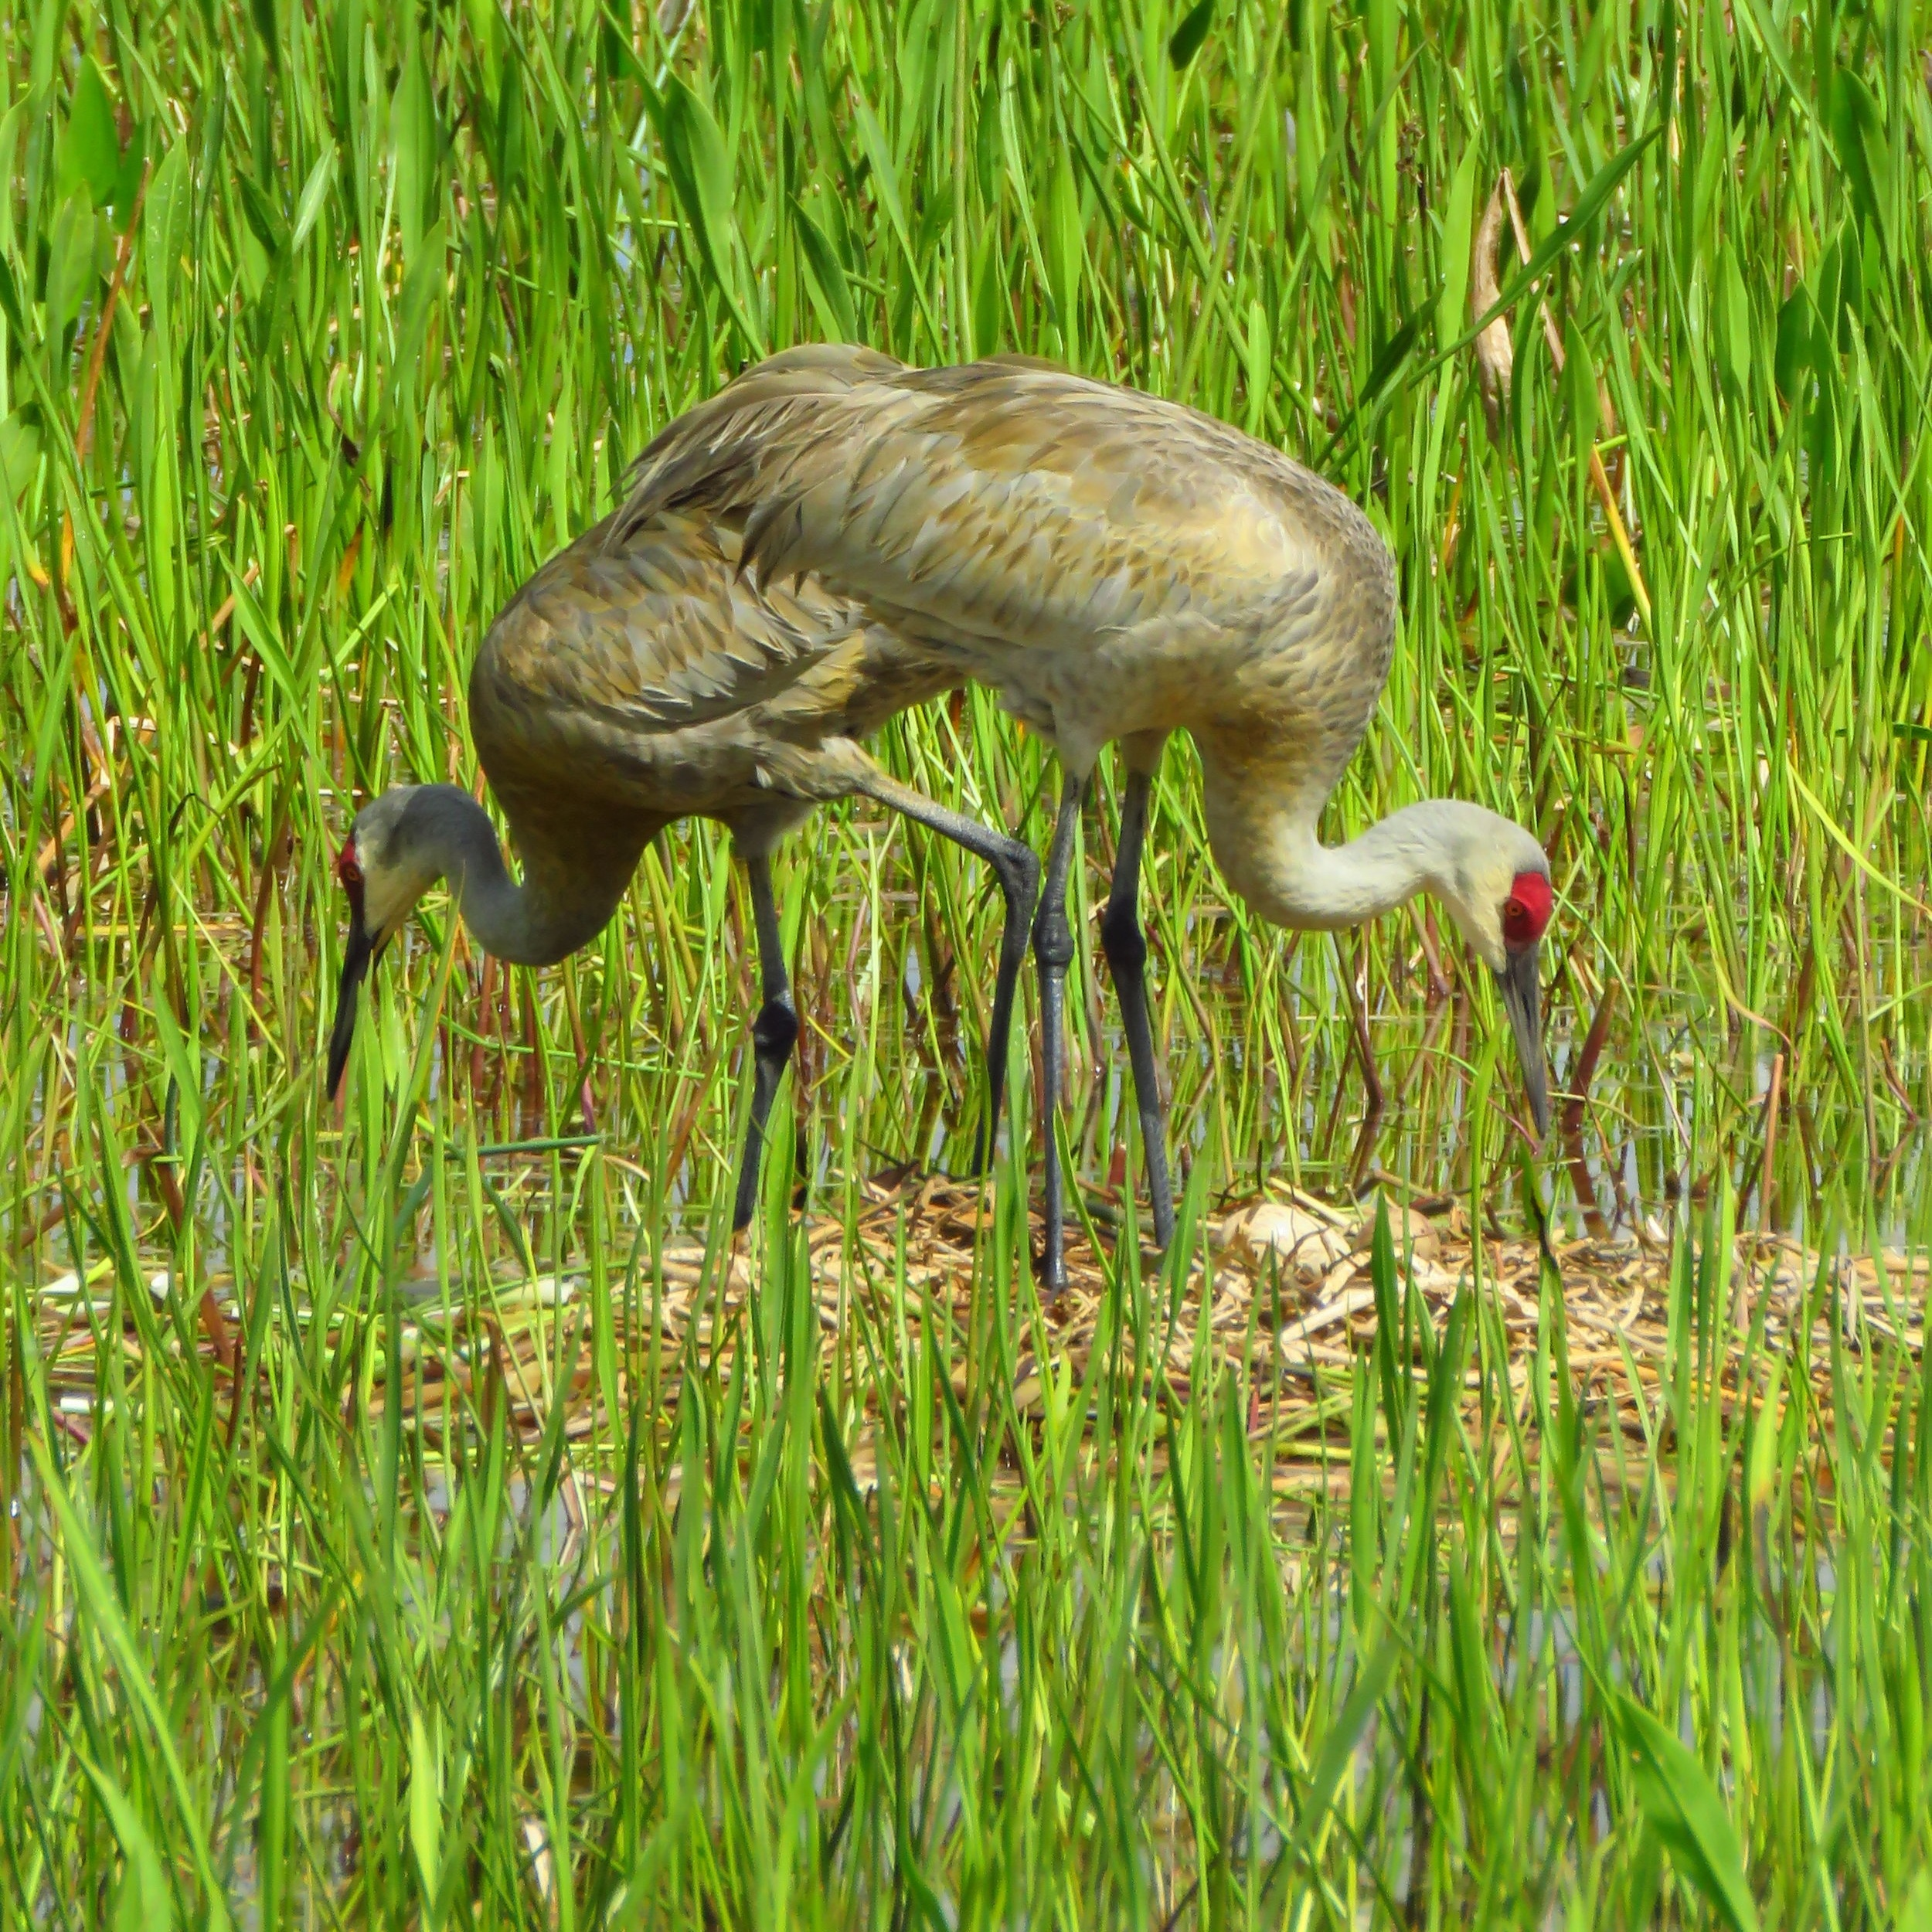 Sandhill cranes tending eggs in the nest